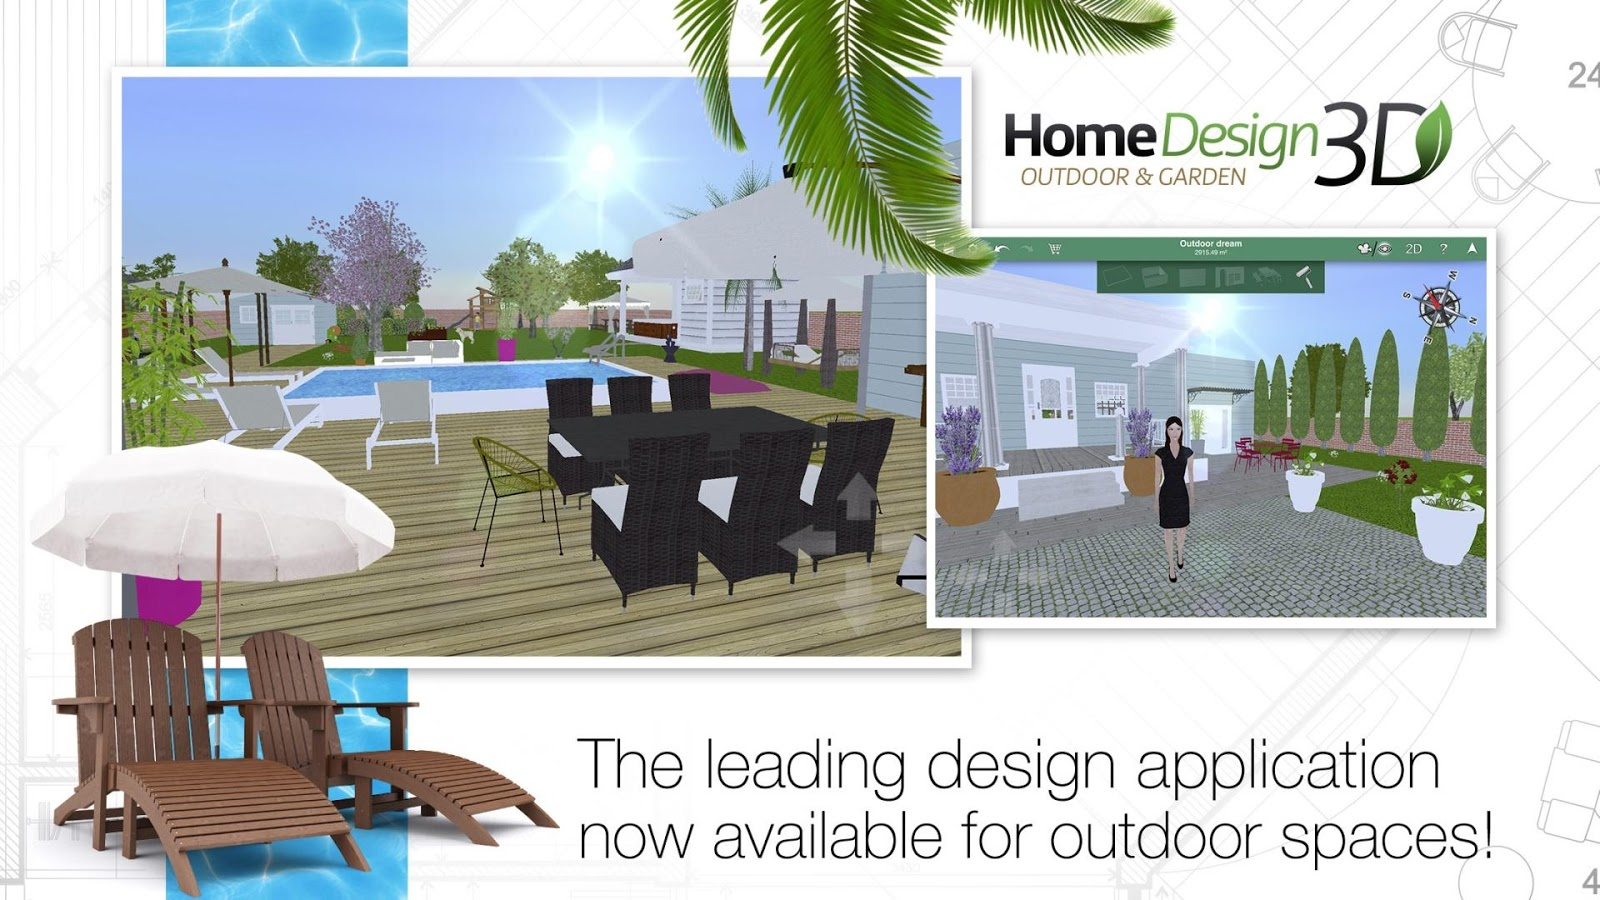 Home design 3d outdoor garden android apps on google play for 3d design app